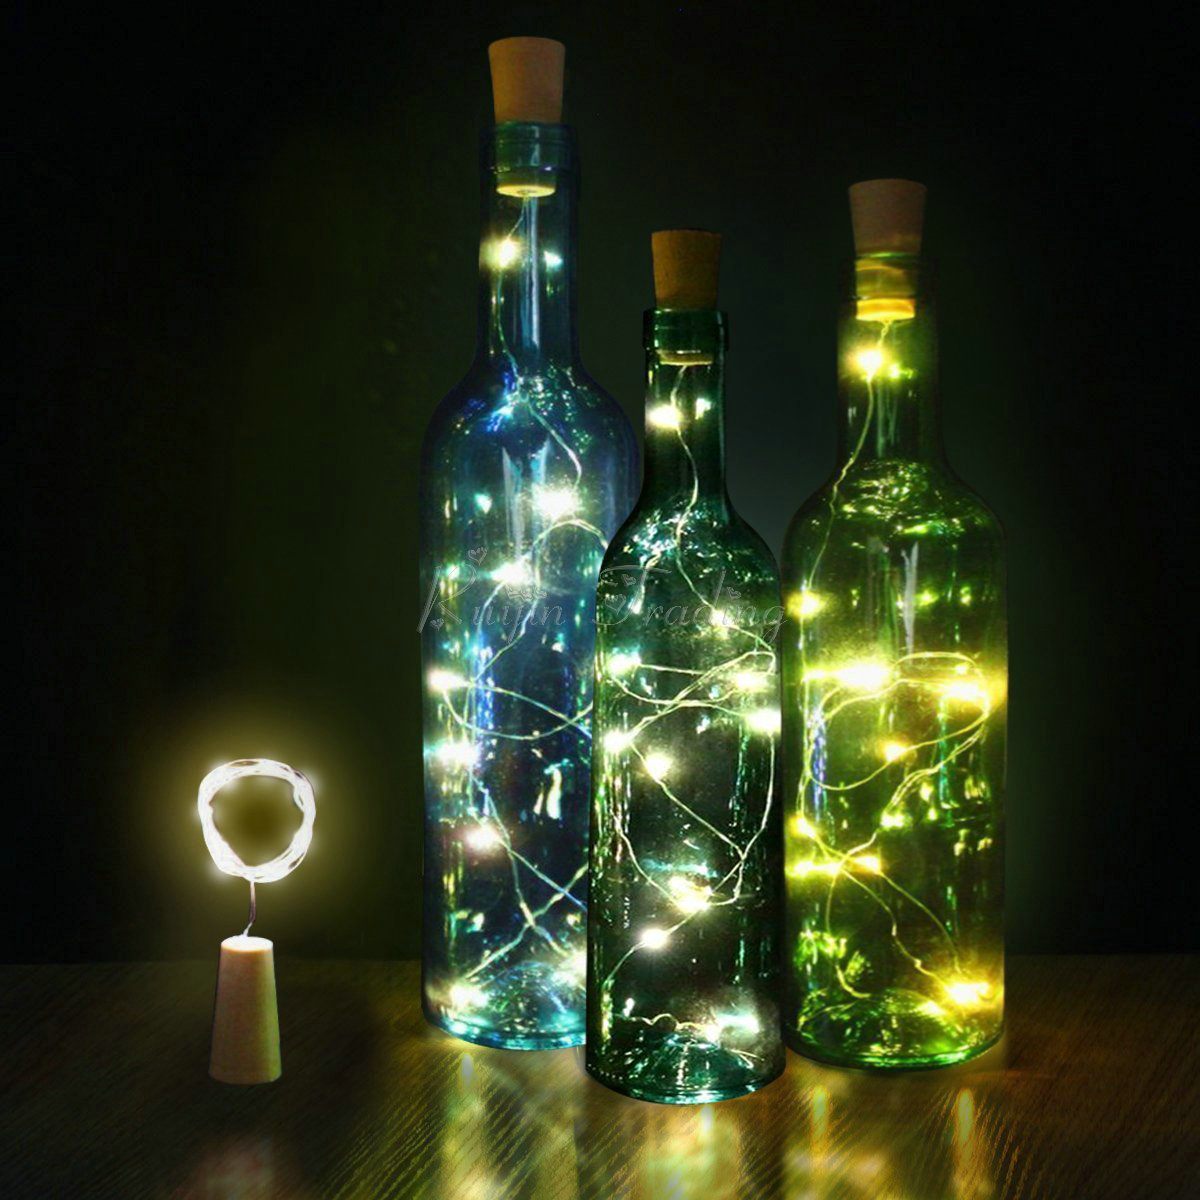 Led Table Lamps Punctual Cork Shaped Wine Bottle Stopper String Lights 2 Meters 20 Leds Silver Copper Wire Diy Christmas Halloween Wedding Party Crafts